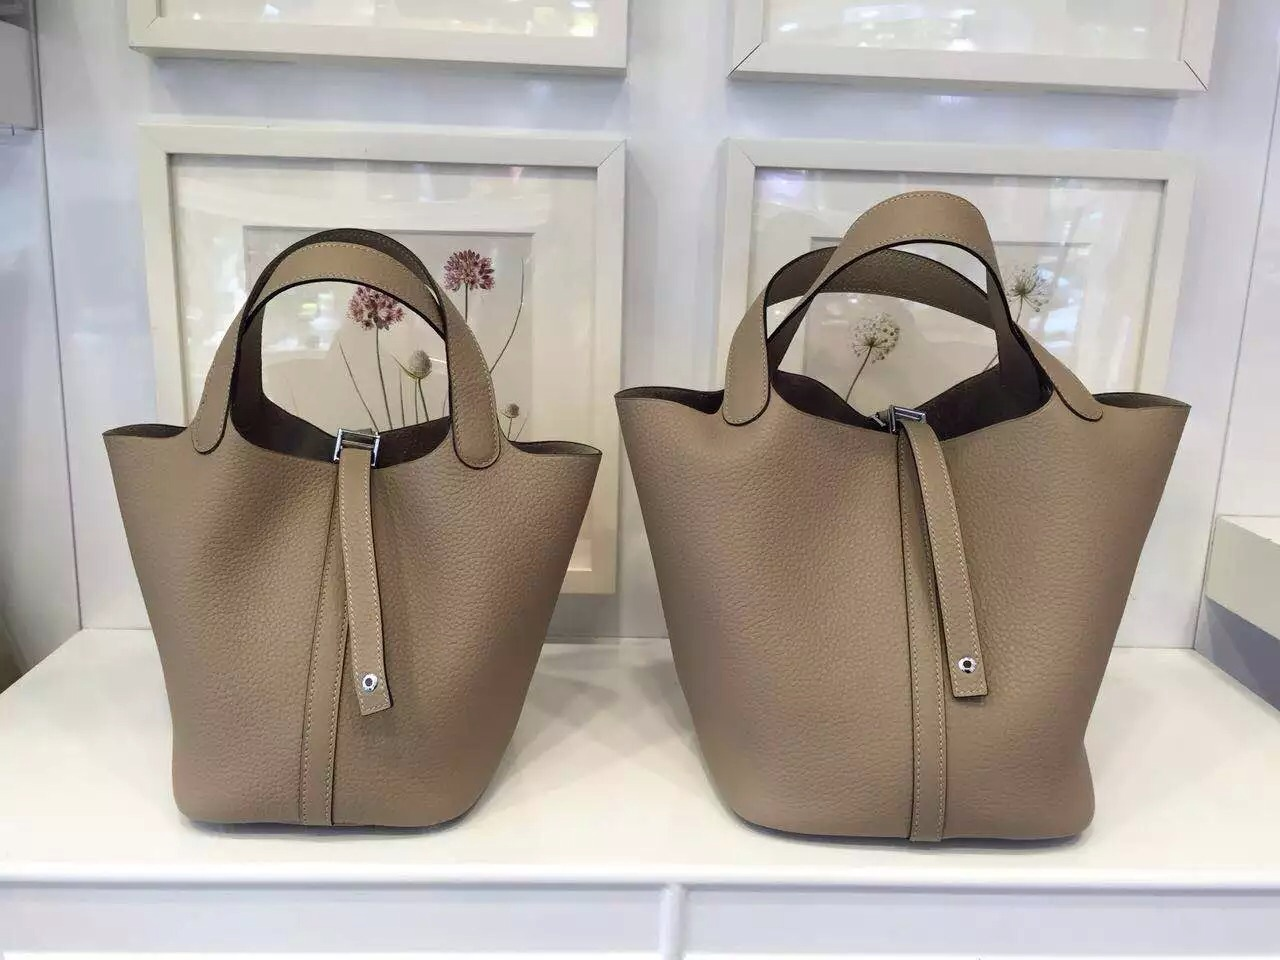 New Fashion Women\u0026#39;s Bag Hermes Picotin Lock Gris Tourterelle ...